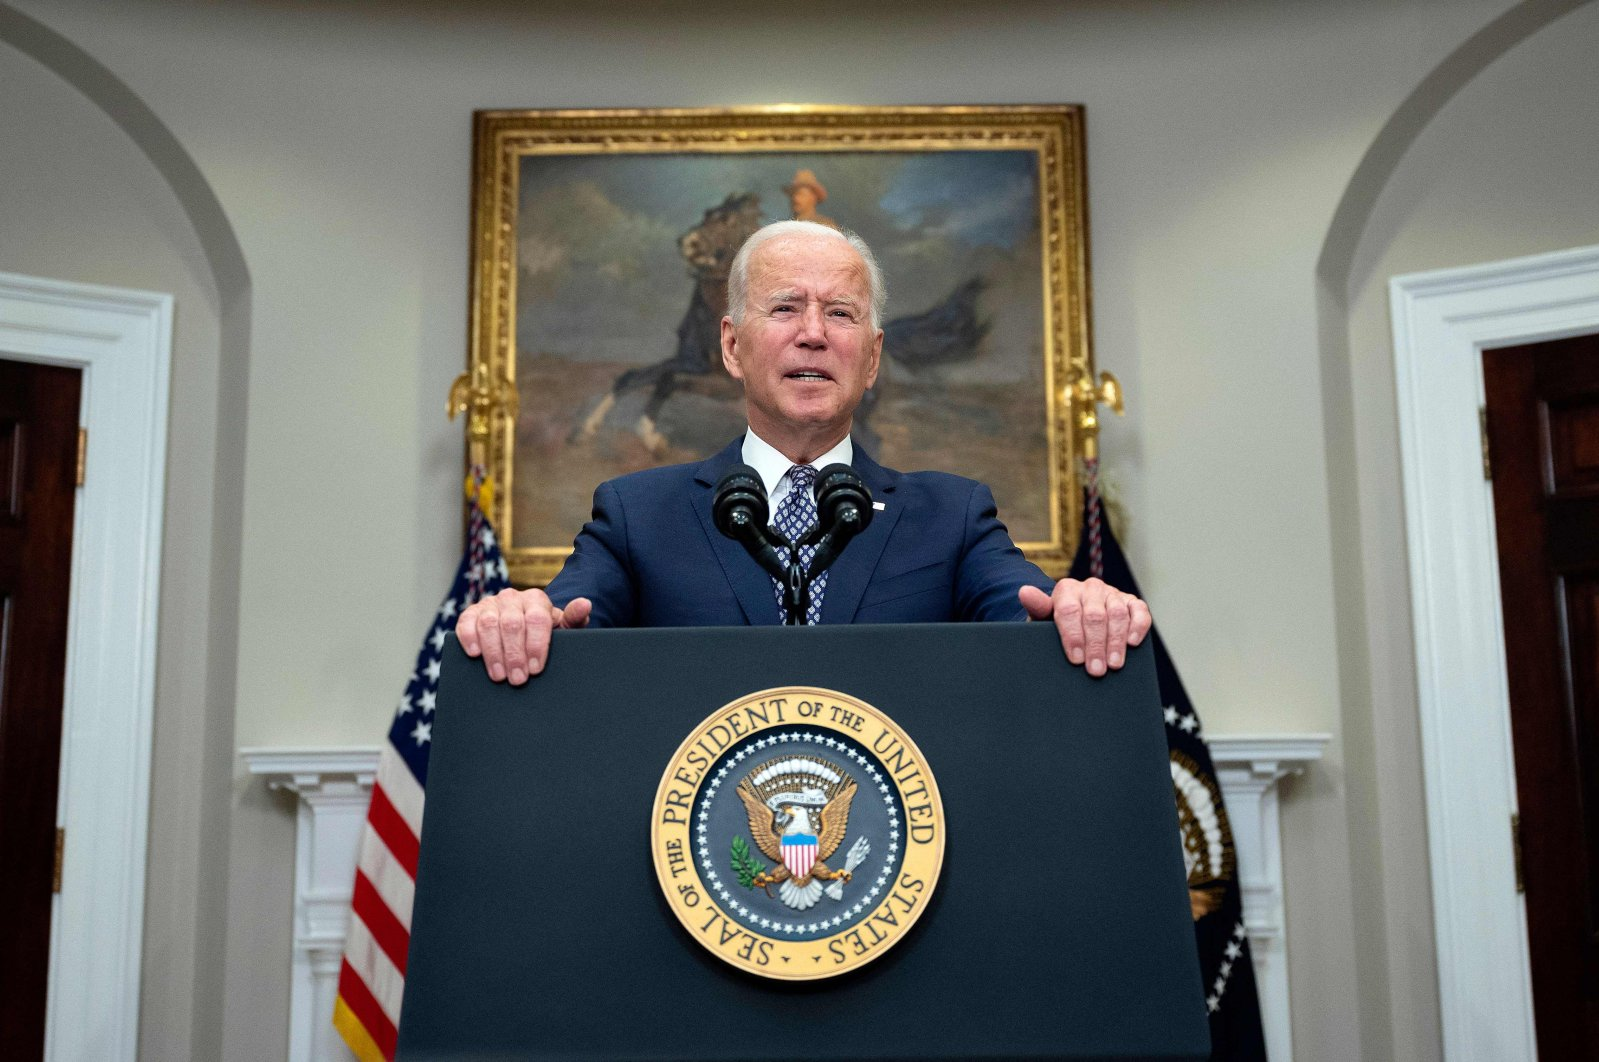 US President Joe Biden speaks about the ongoing evacuation of Afghanistan, on August 24, 2021, from the Roosevelt Room of the White House in Washington, DC. (AFP Photo)